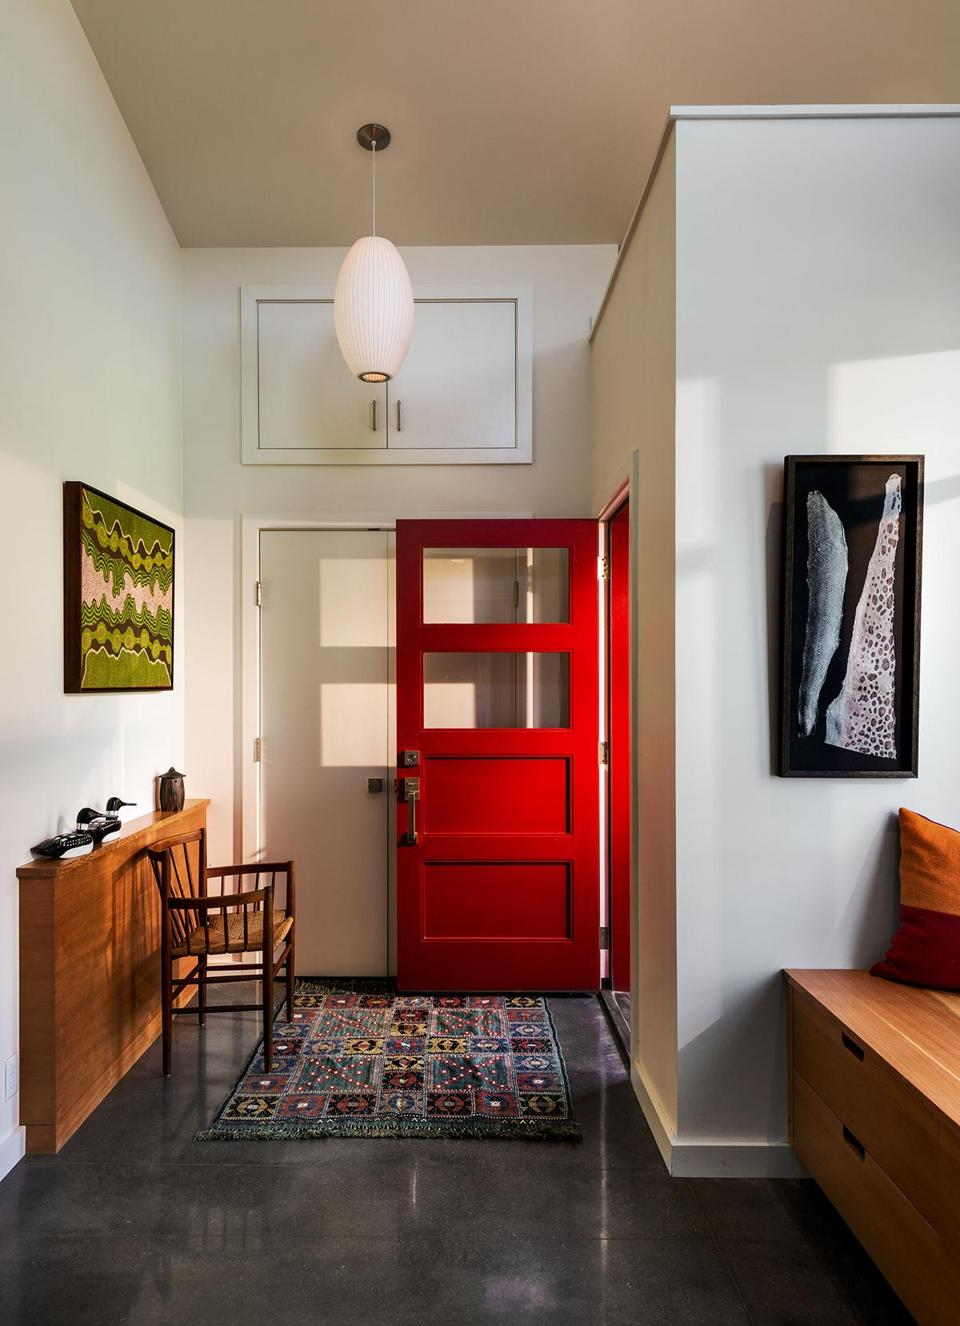 Architect Ira Clark designed the narrow fir ledge in the entry to hold keys and such. A painting by an Aboriginal artist that the homeowners bought in Australia hangs above. Two pieces of fish-skin leather they brought back from Iceland and framed hang by the window seat.